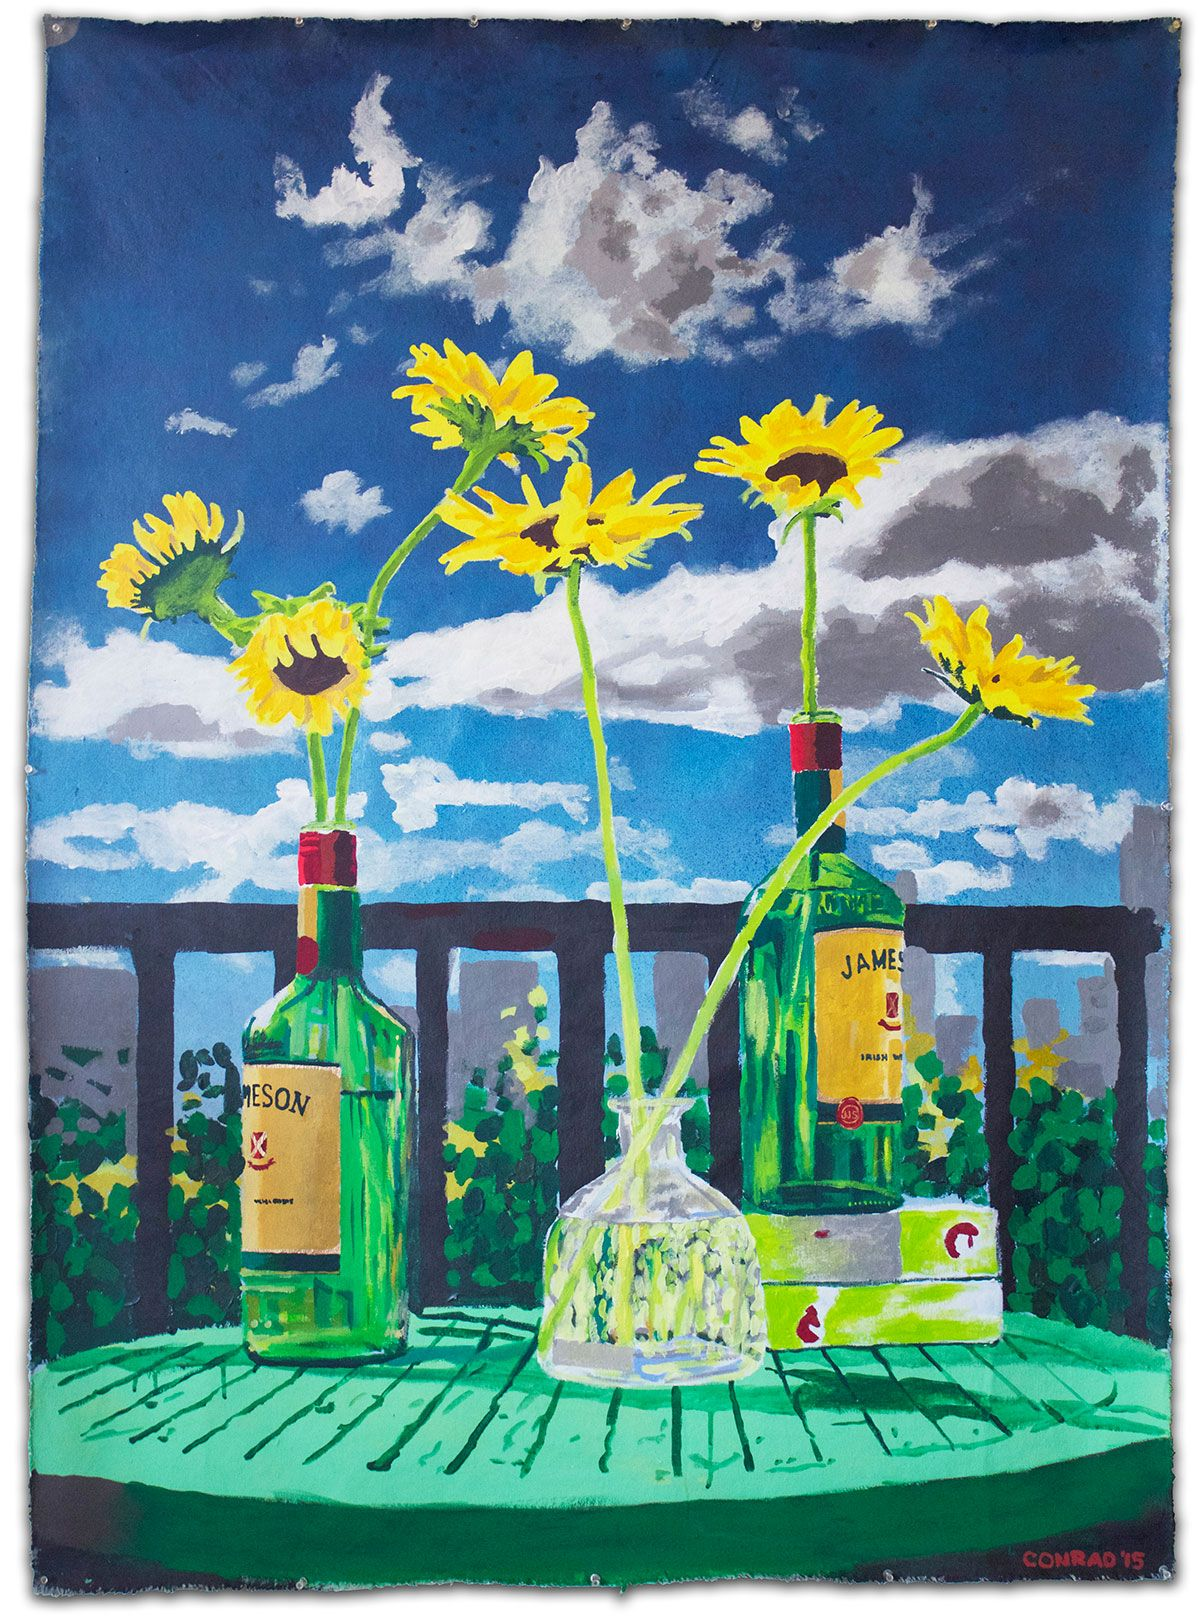 Spray Paint Still Life on Canvas - Sunflowers in Bottles